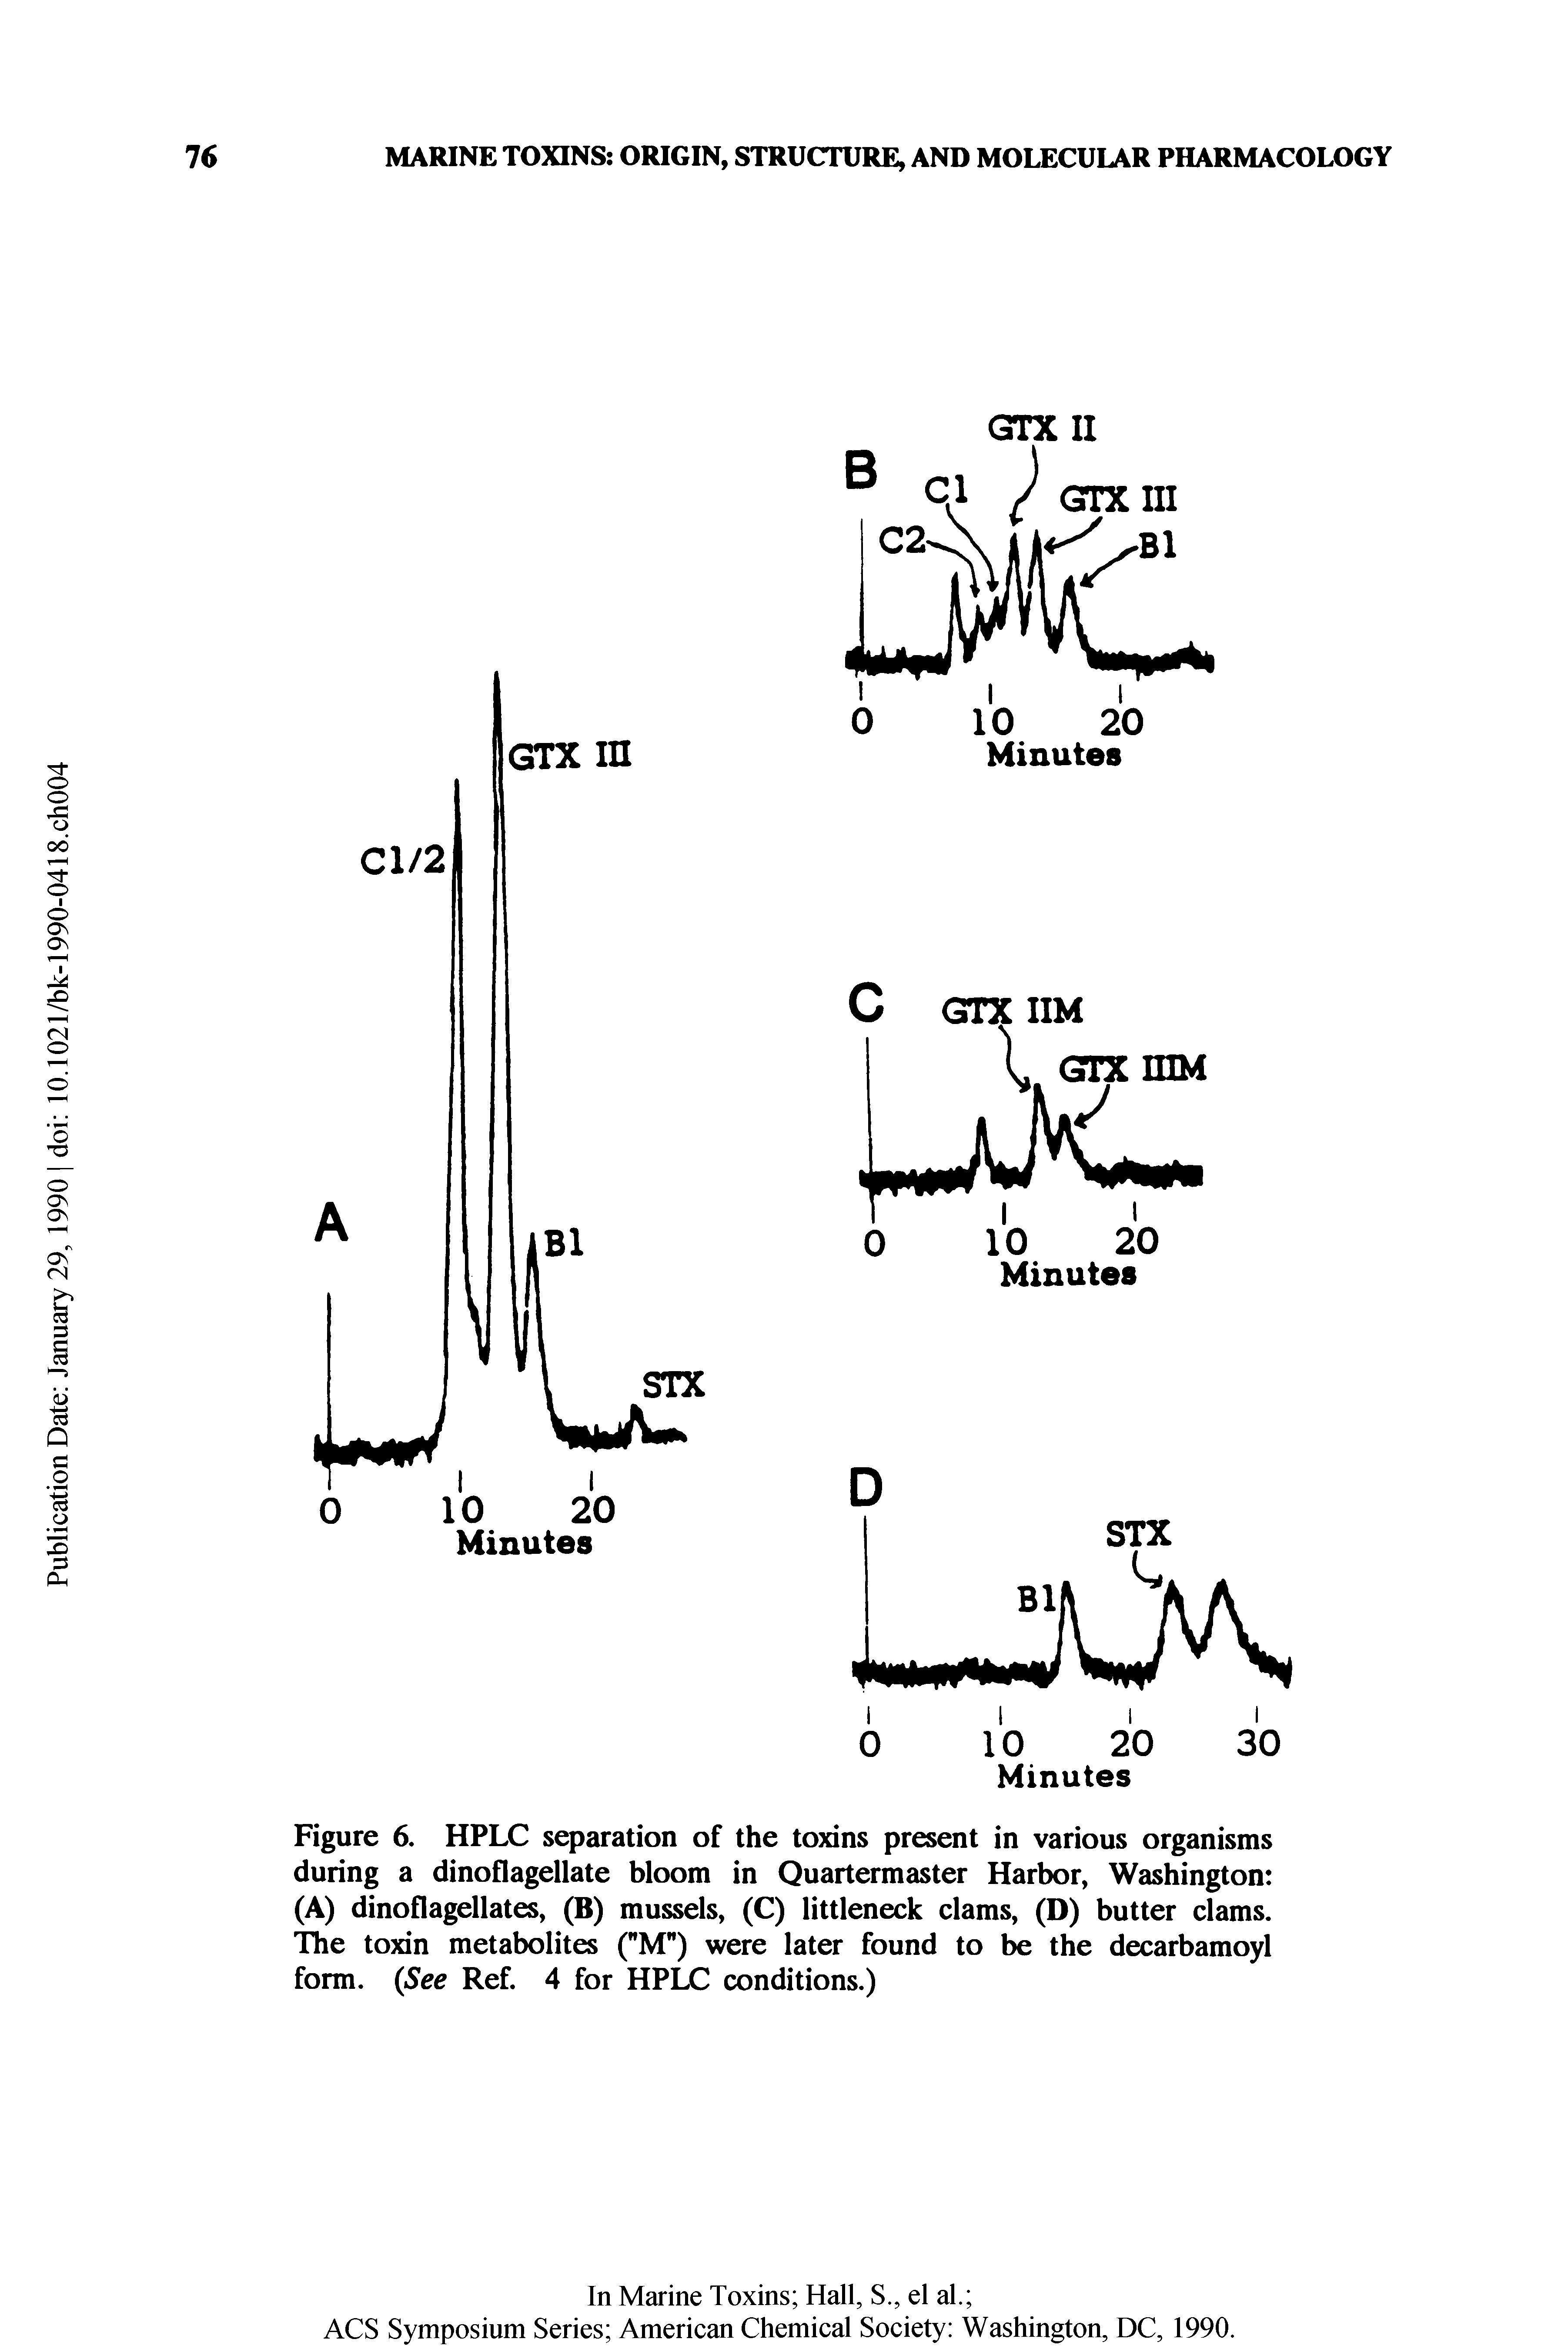 "Figure 6. HPLC separation of the toxins present in various organisms during a dinoflagellate bloom in Quartermaster Harbor, Washington (A) dinoflagellates, (B) mussels, (C) littleneck clams, (D) butter clams. The toxin metabolites (""M"") were later found to be the decarbamoyl form. See Ref. 4 for HPLC conditions.)..."